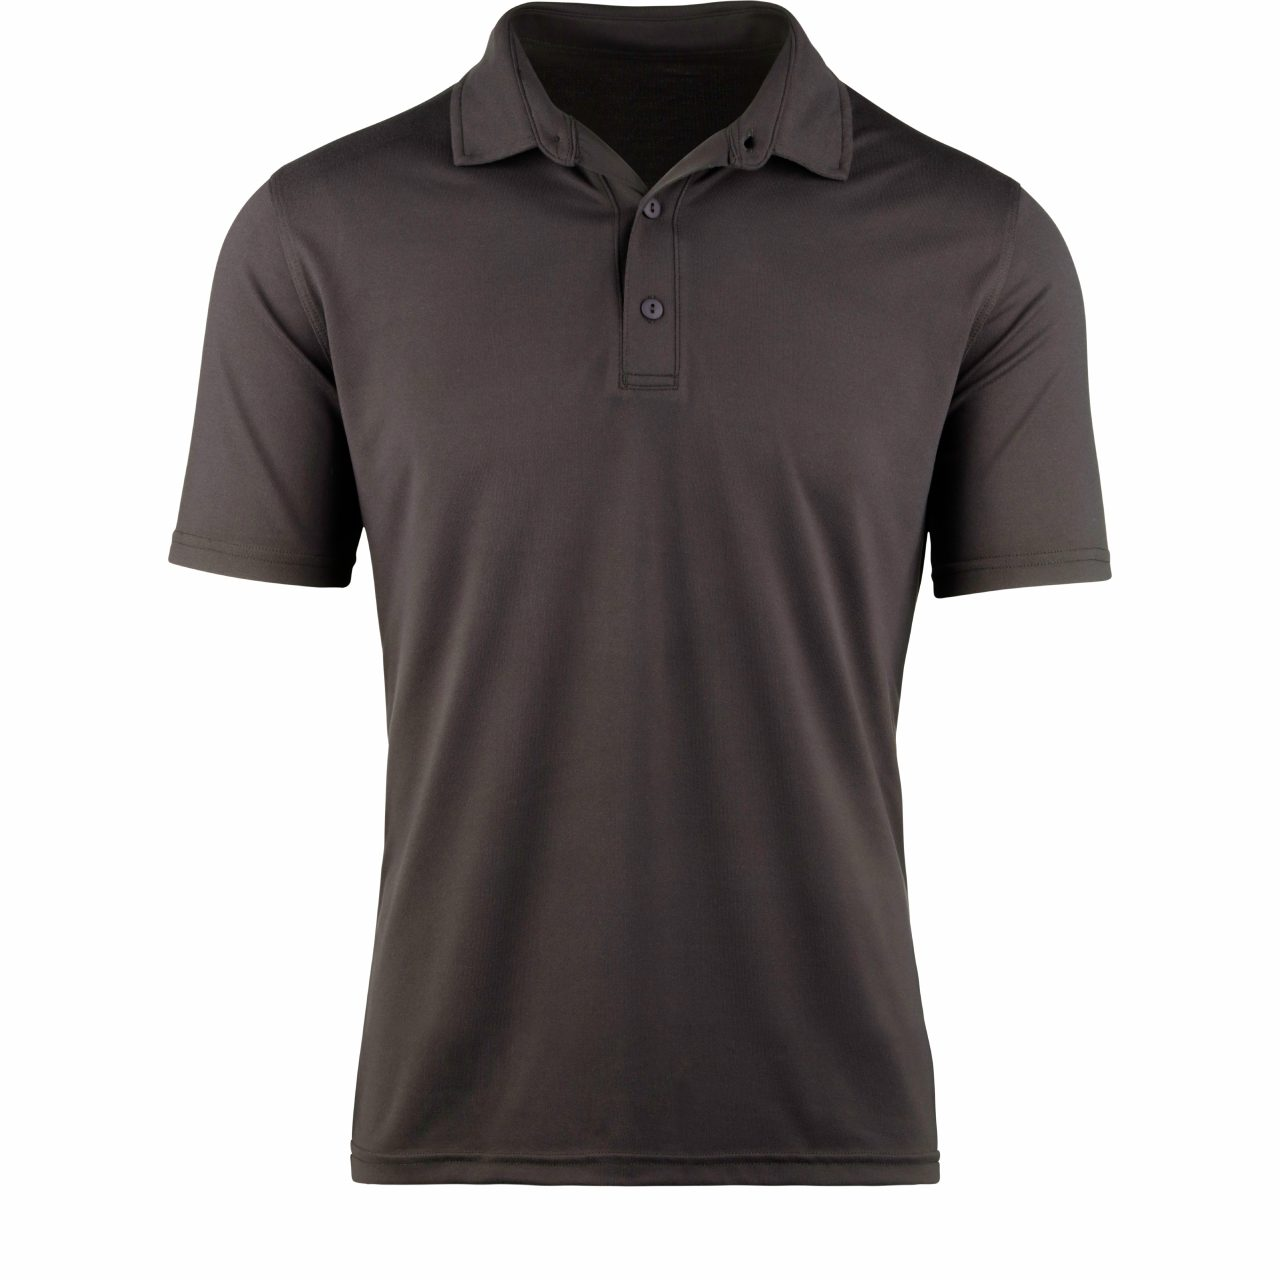 StringKing Apparel Athletic Polo Light Black Short Sleeve Front View